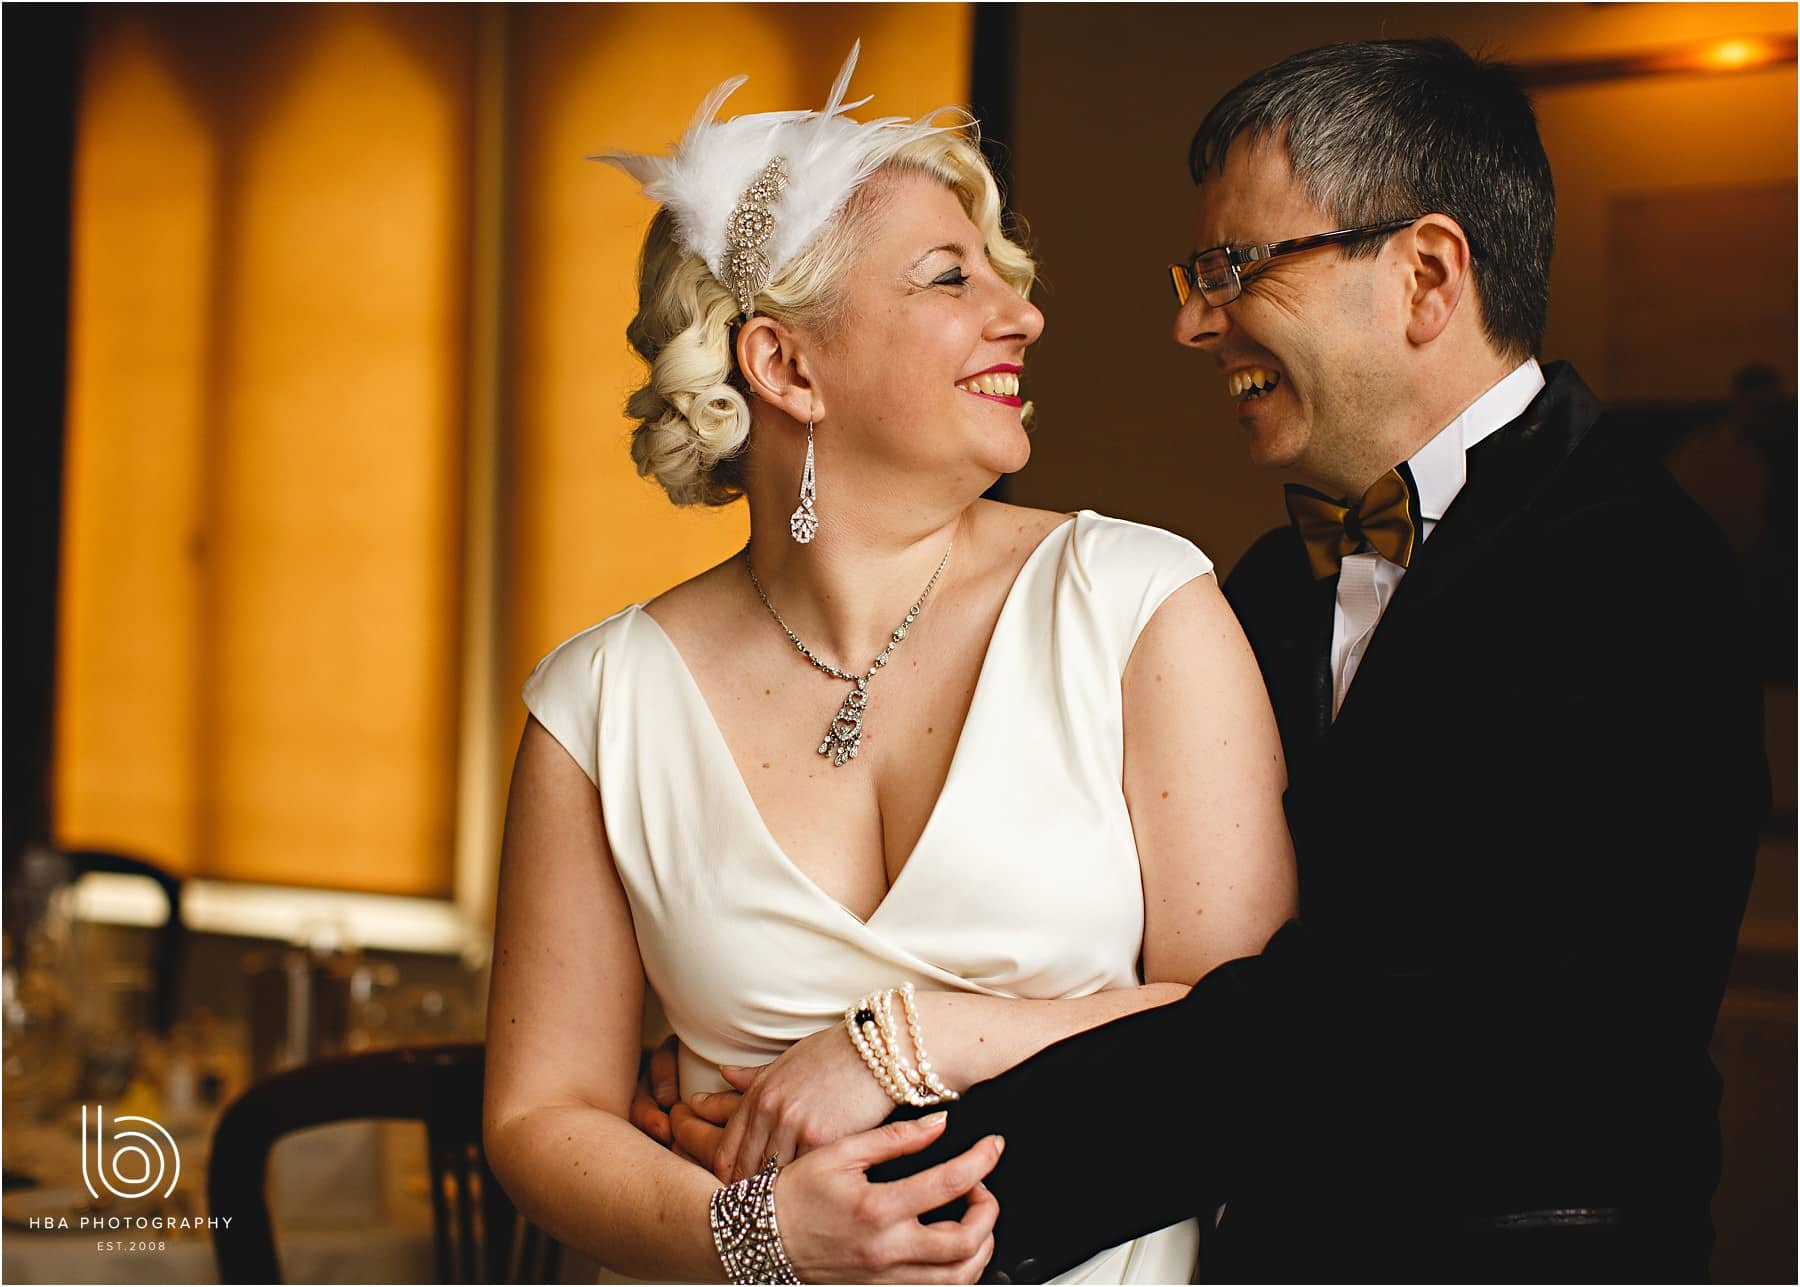 East Lodge wedding - the couple laughing